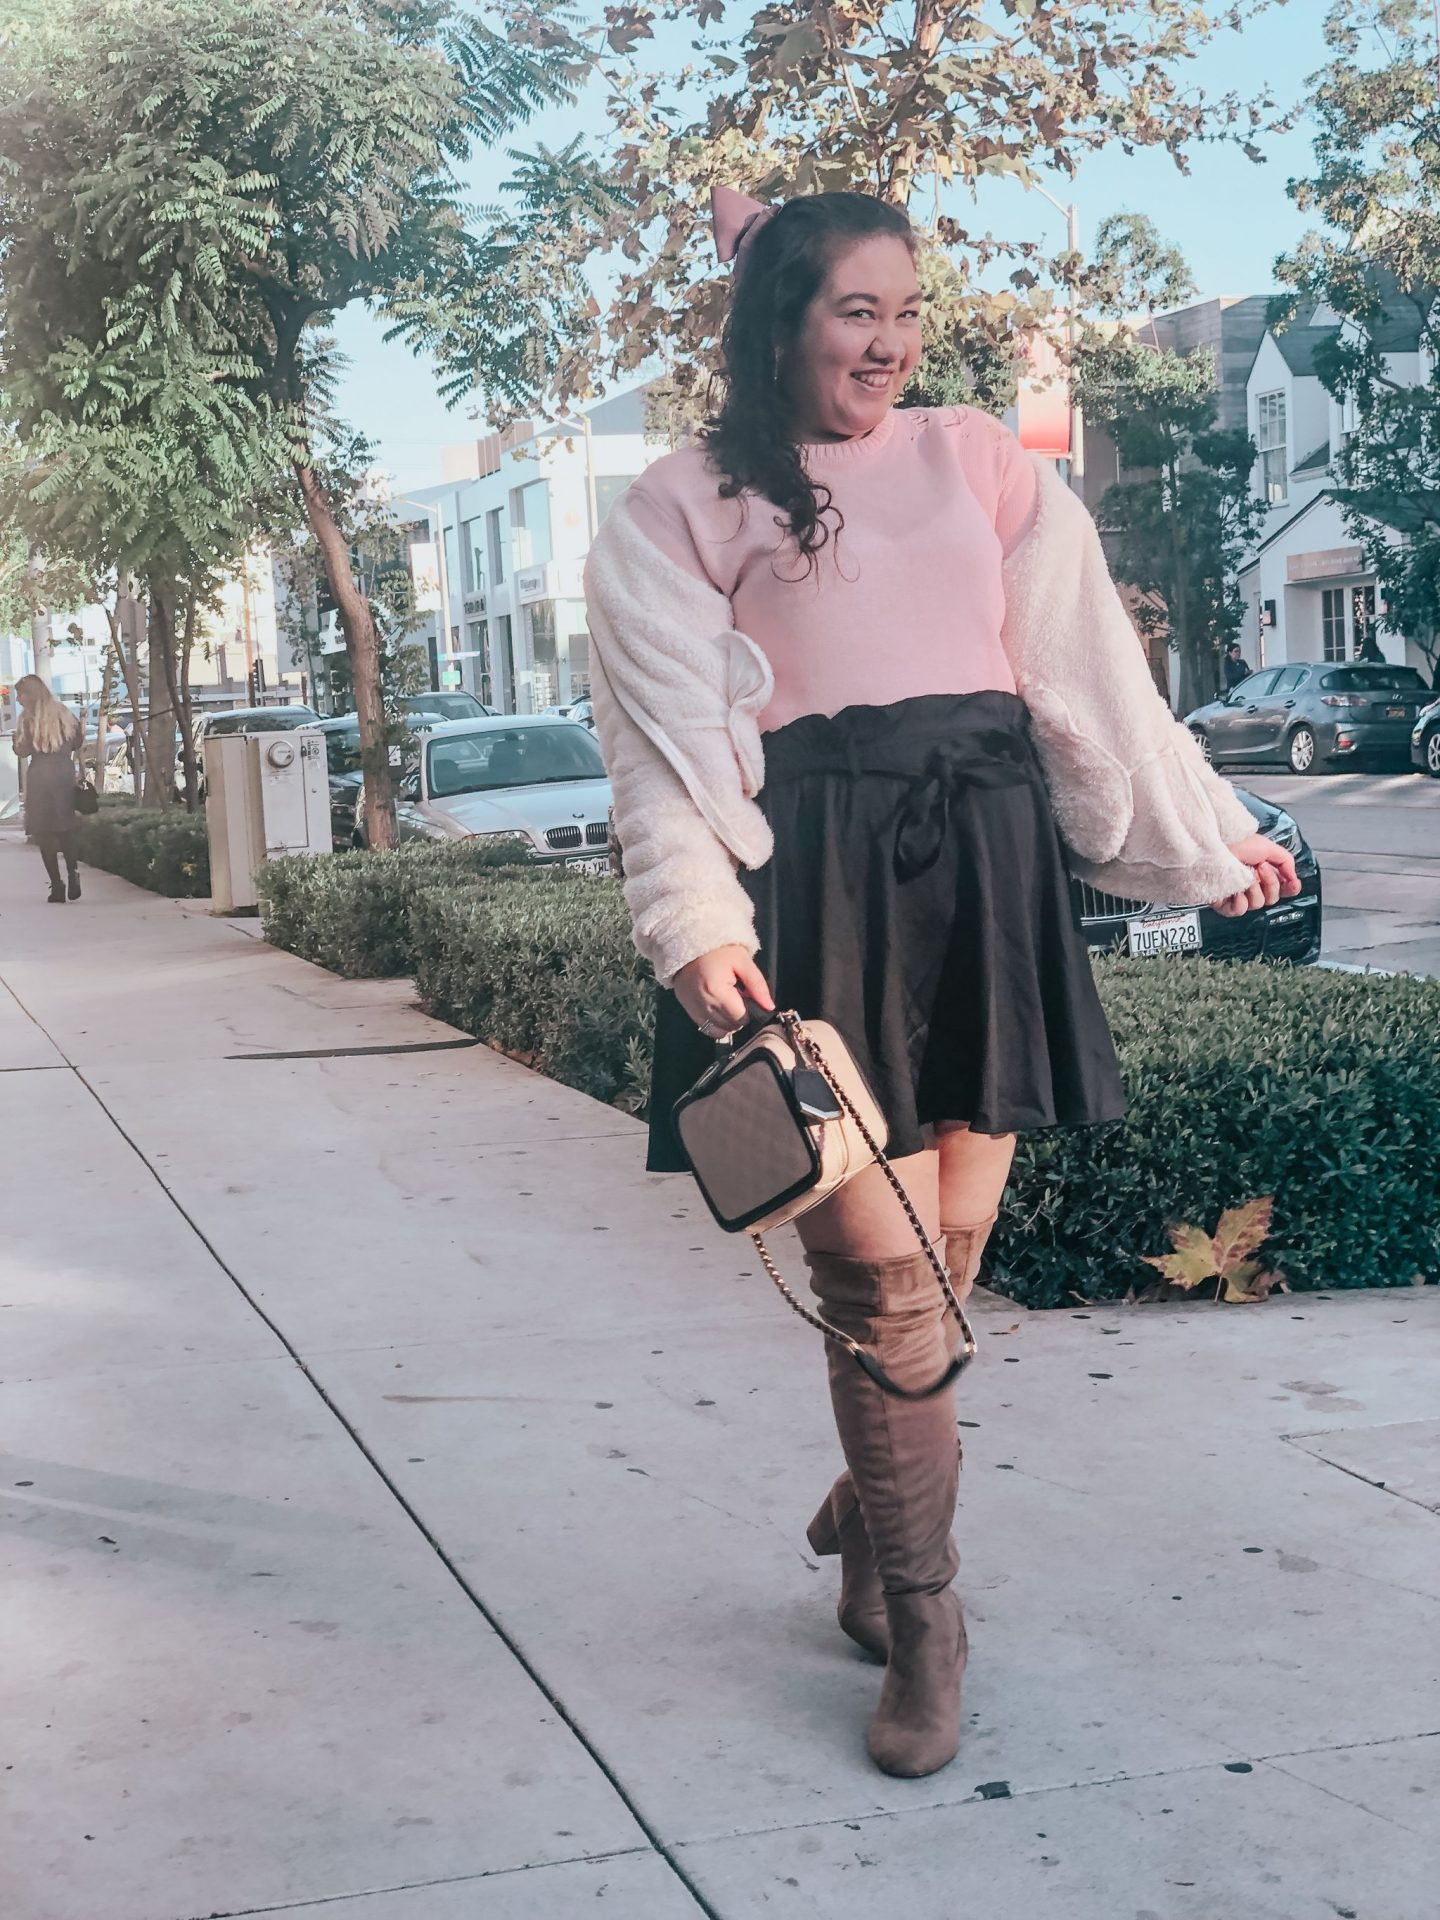 Girly Outfit I Wore To Brunch at Urth Caffe